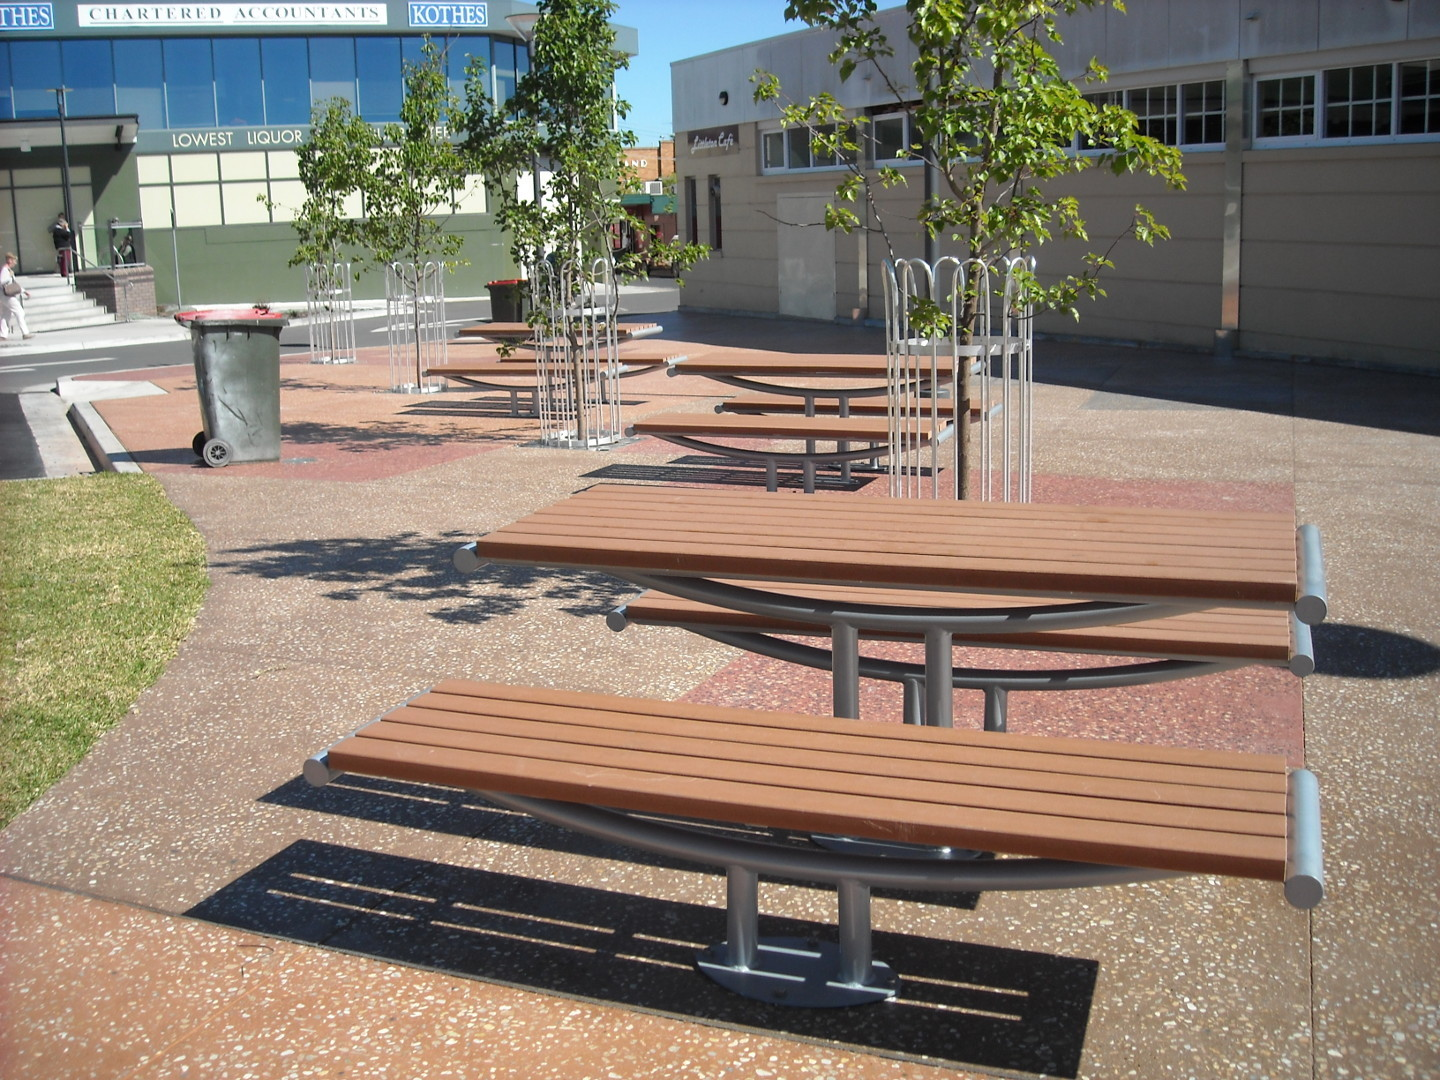 BEGA VALLEY SHIRE COUNCIL - Littleton Gardens, Street & Park Furniture